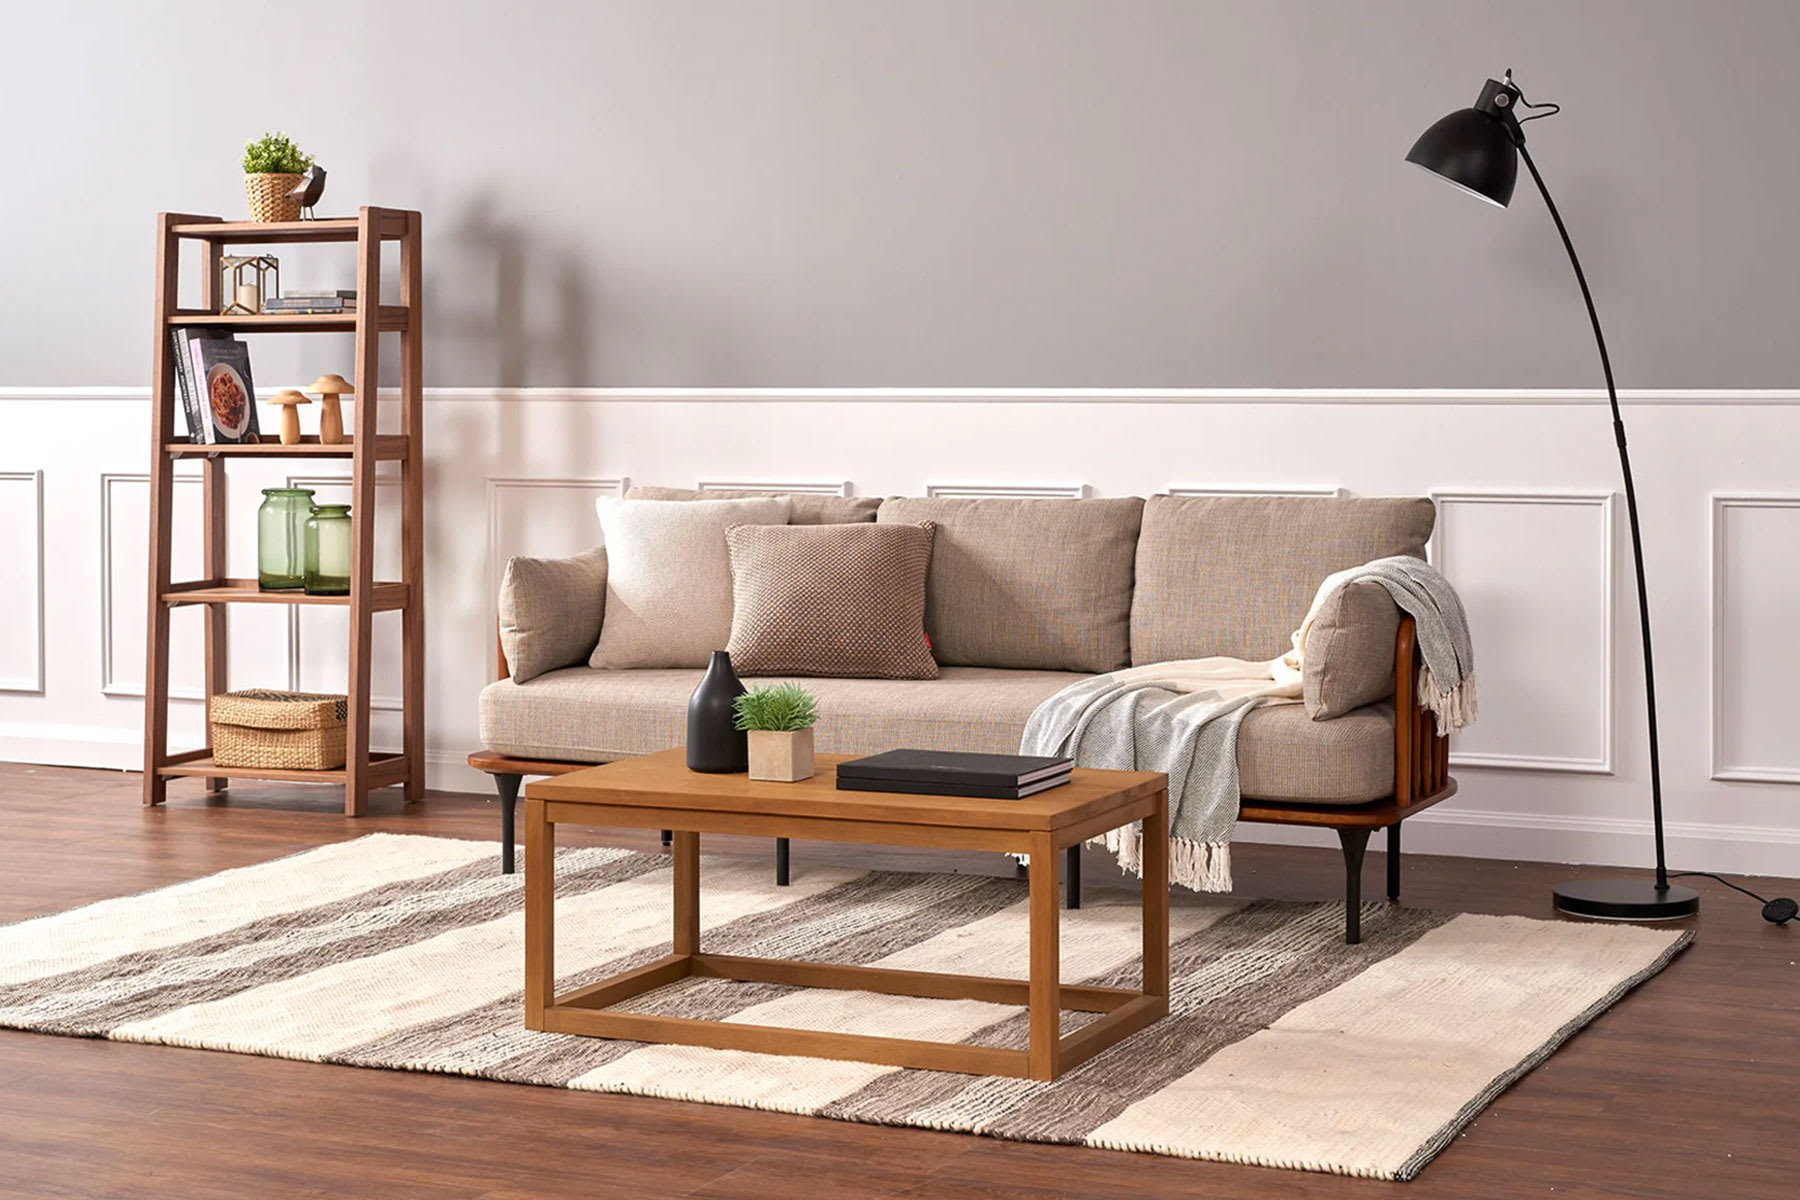 modern sofa with coffee table, shelf and standing lamp